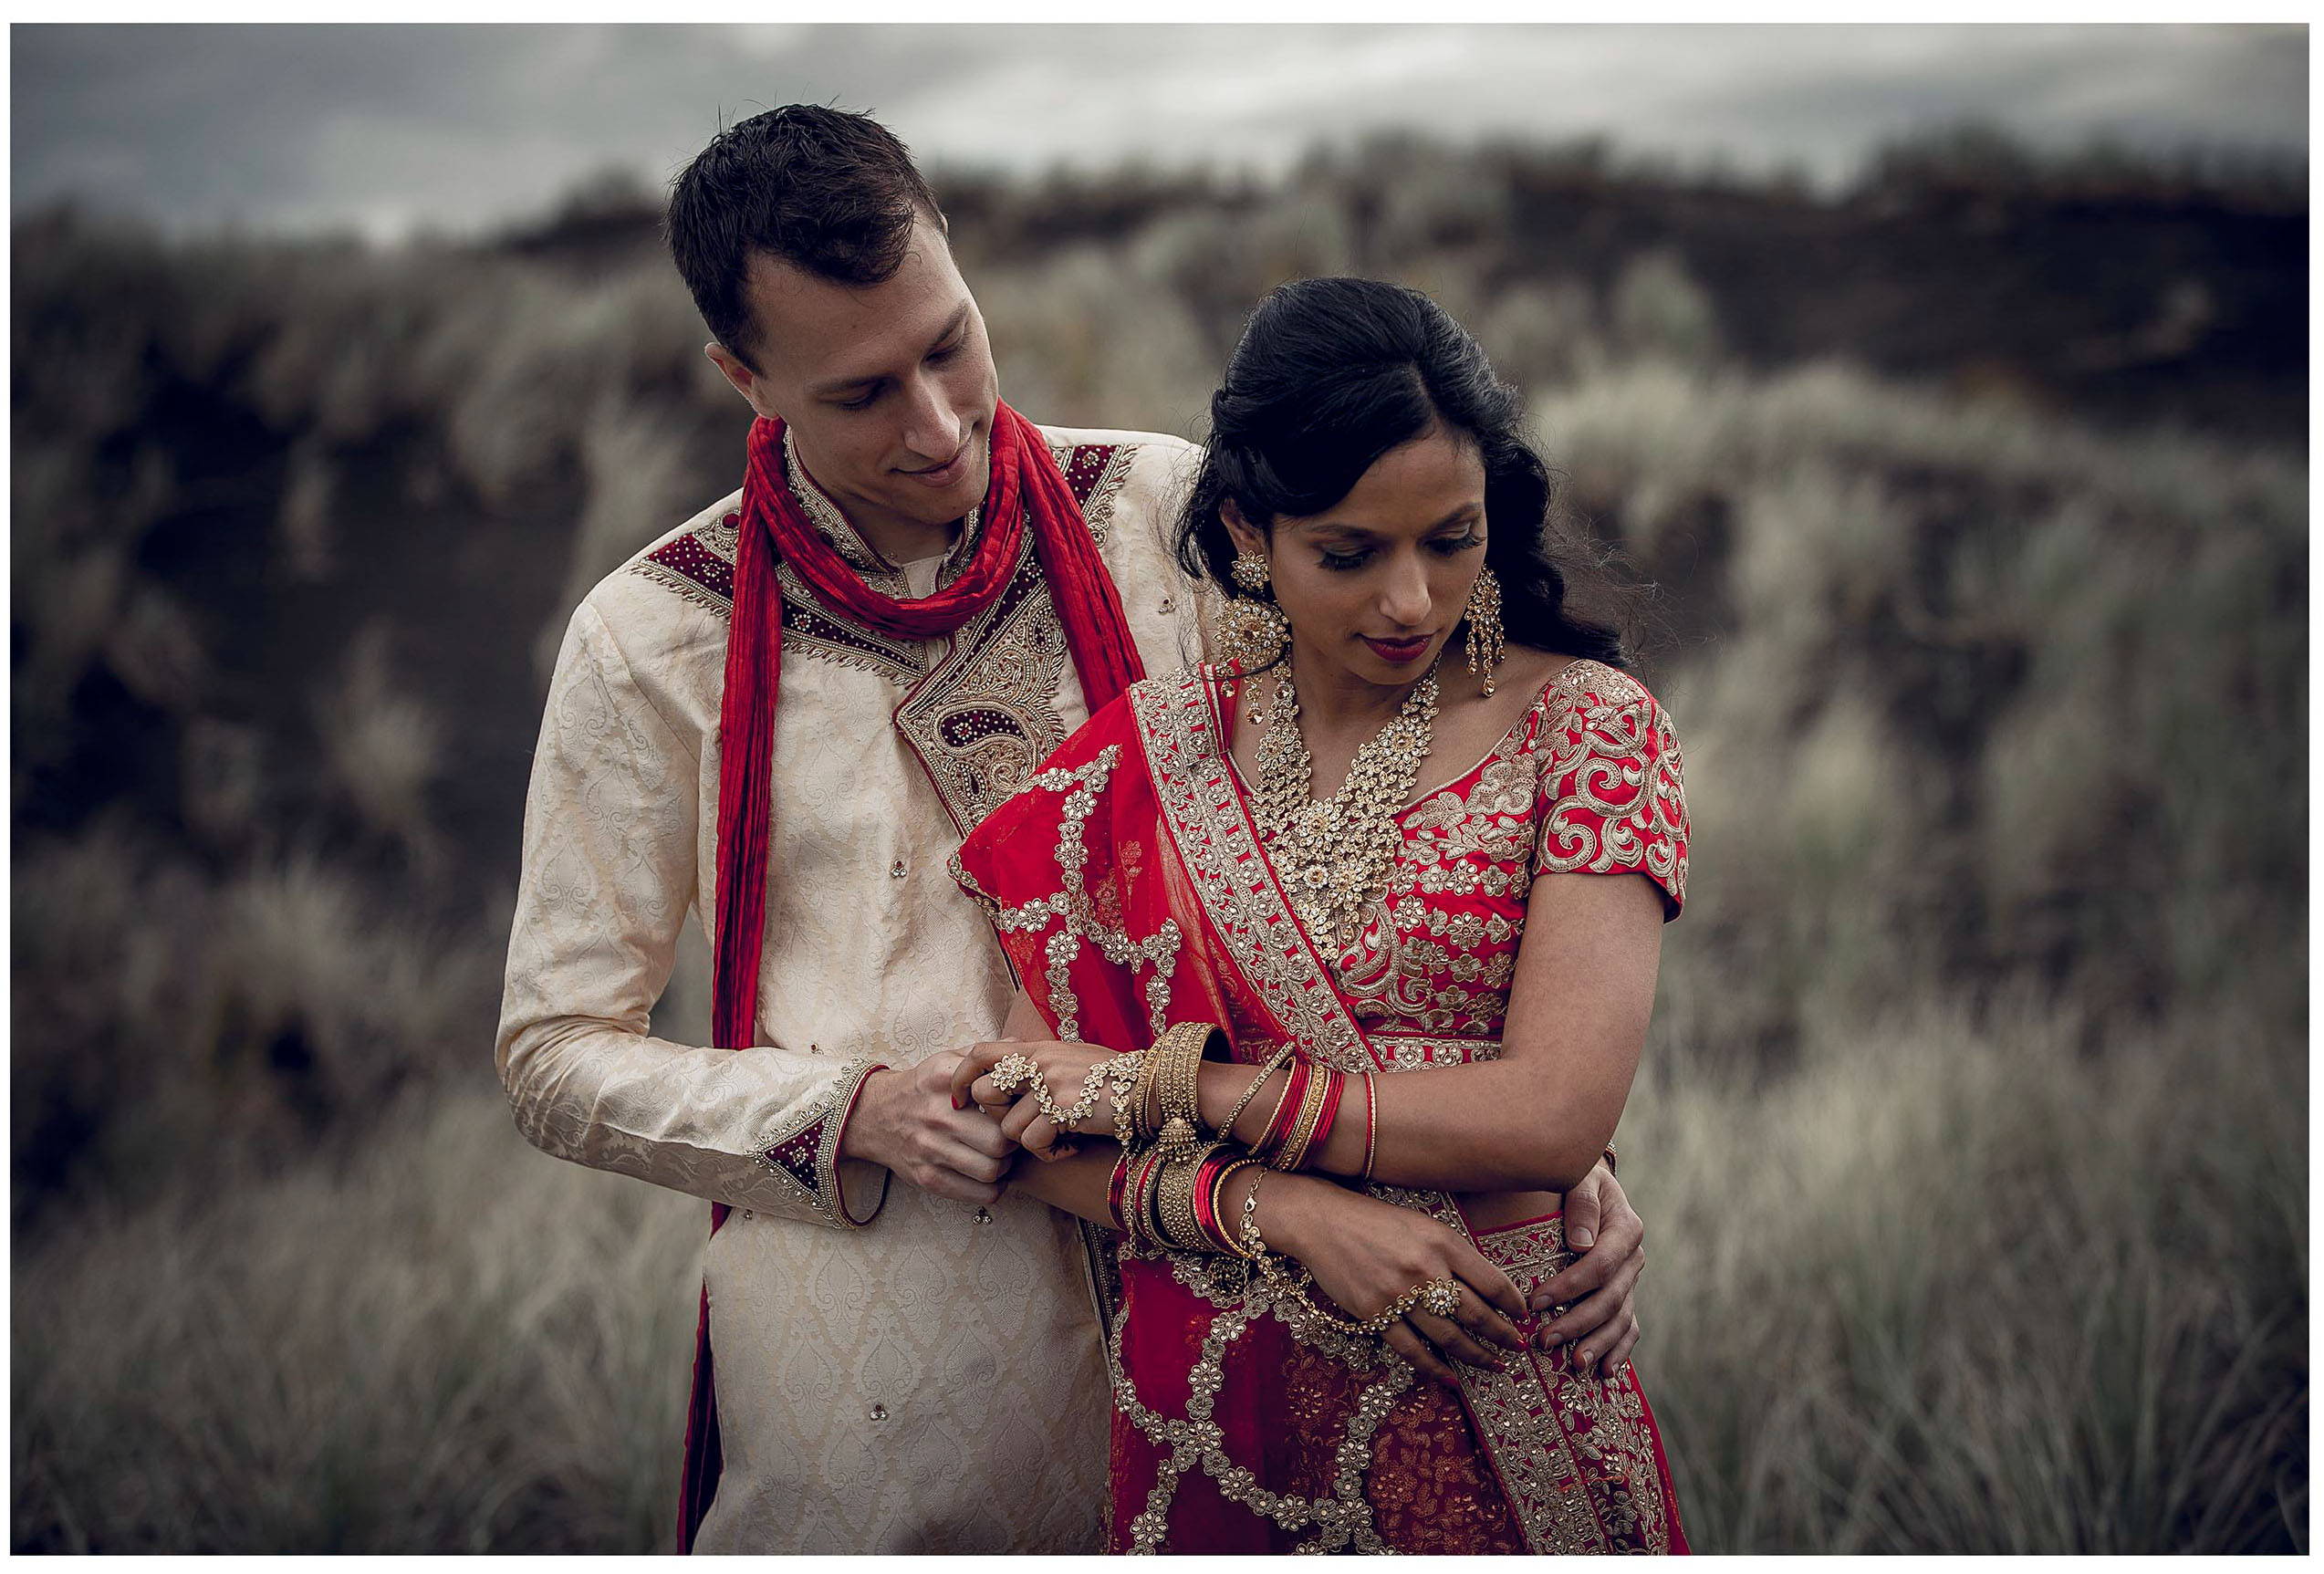 Indian wedding betthels beach photo by Chris Loufte